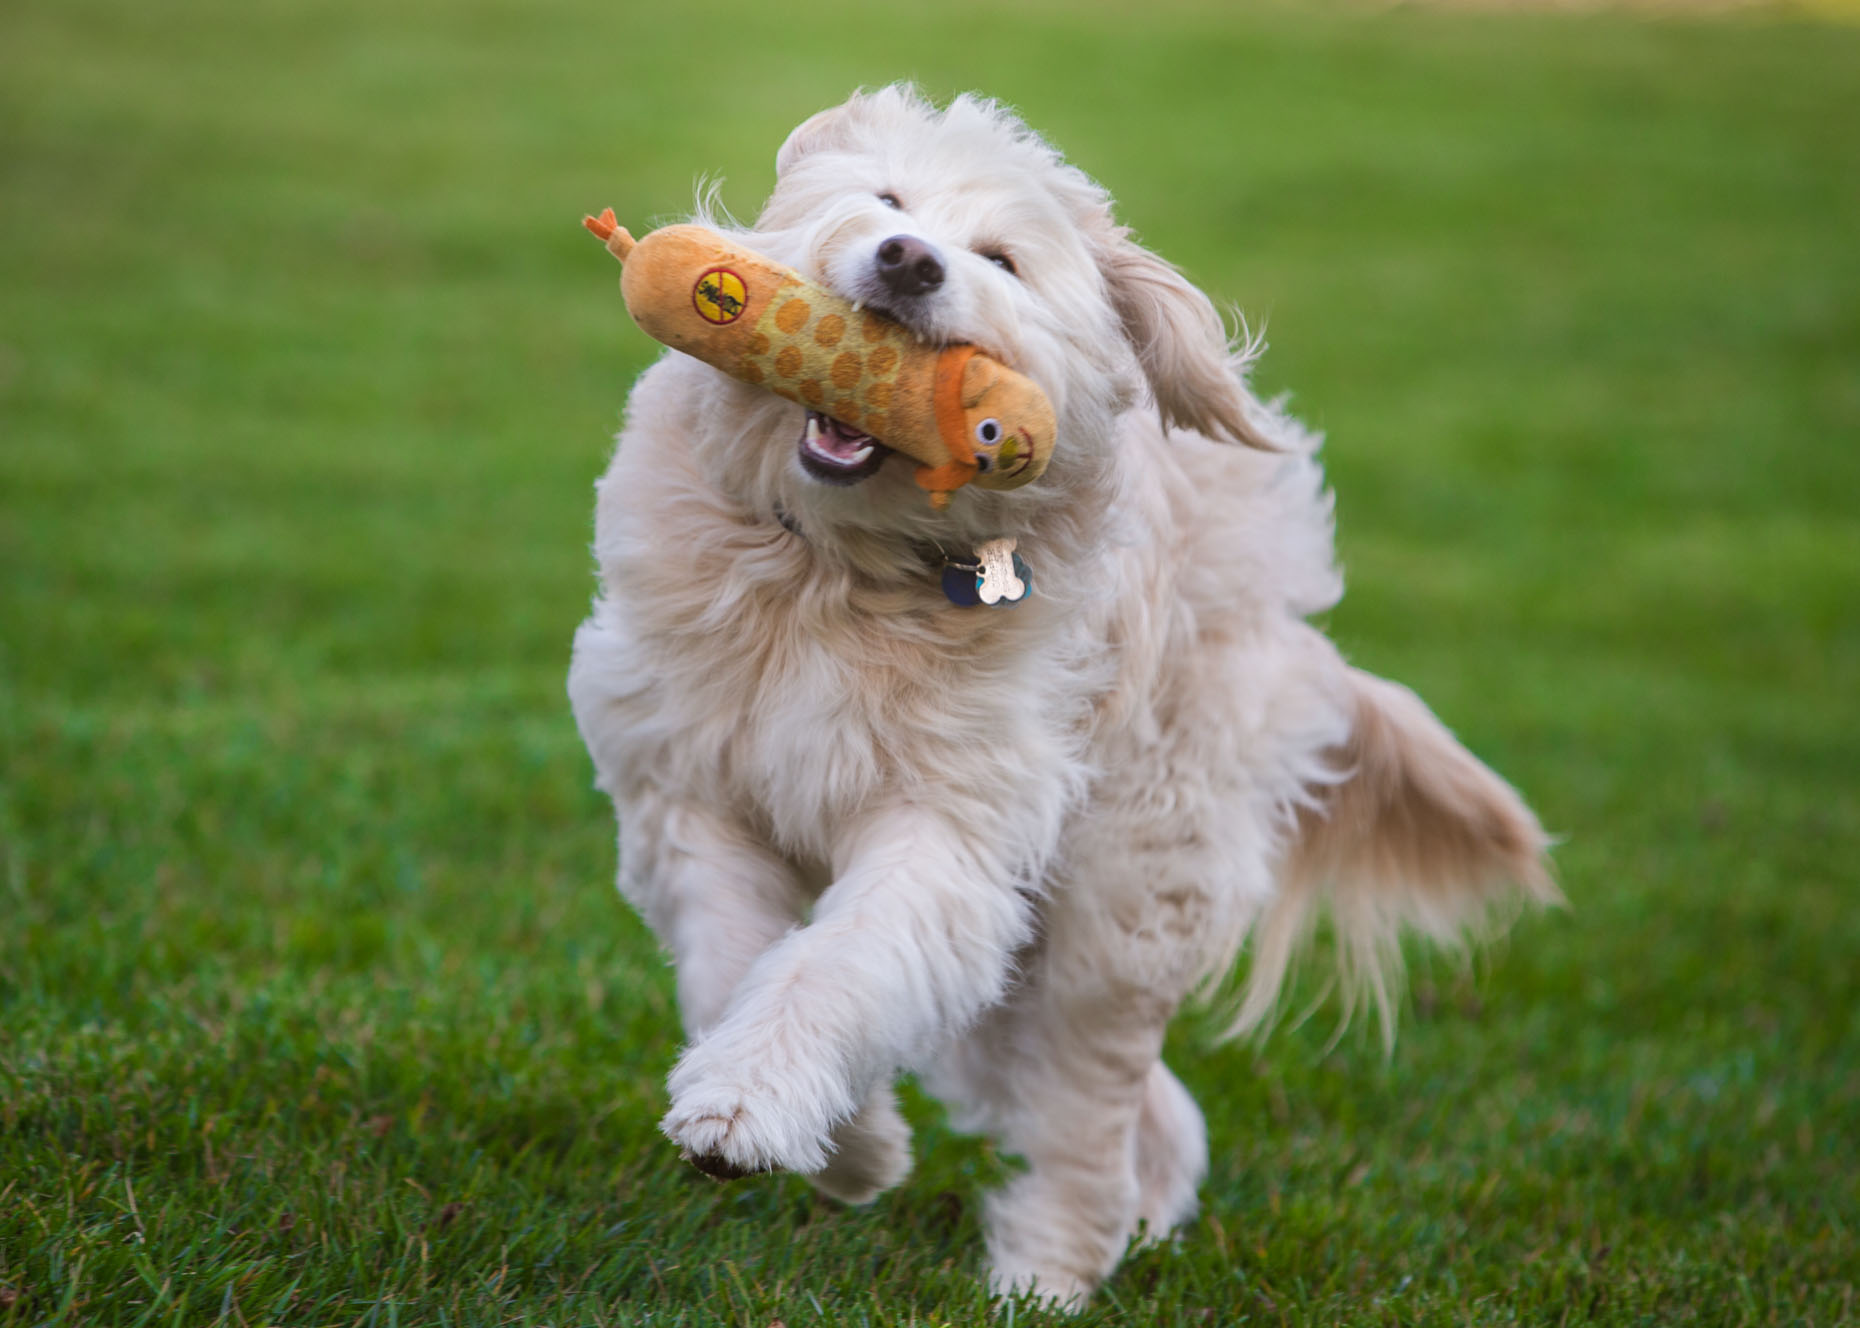 Pet Photography | Dog Running with Toy by Mark Rogers